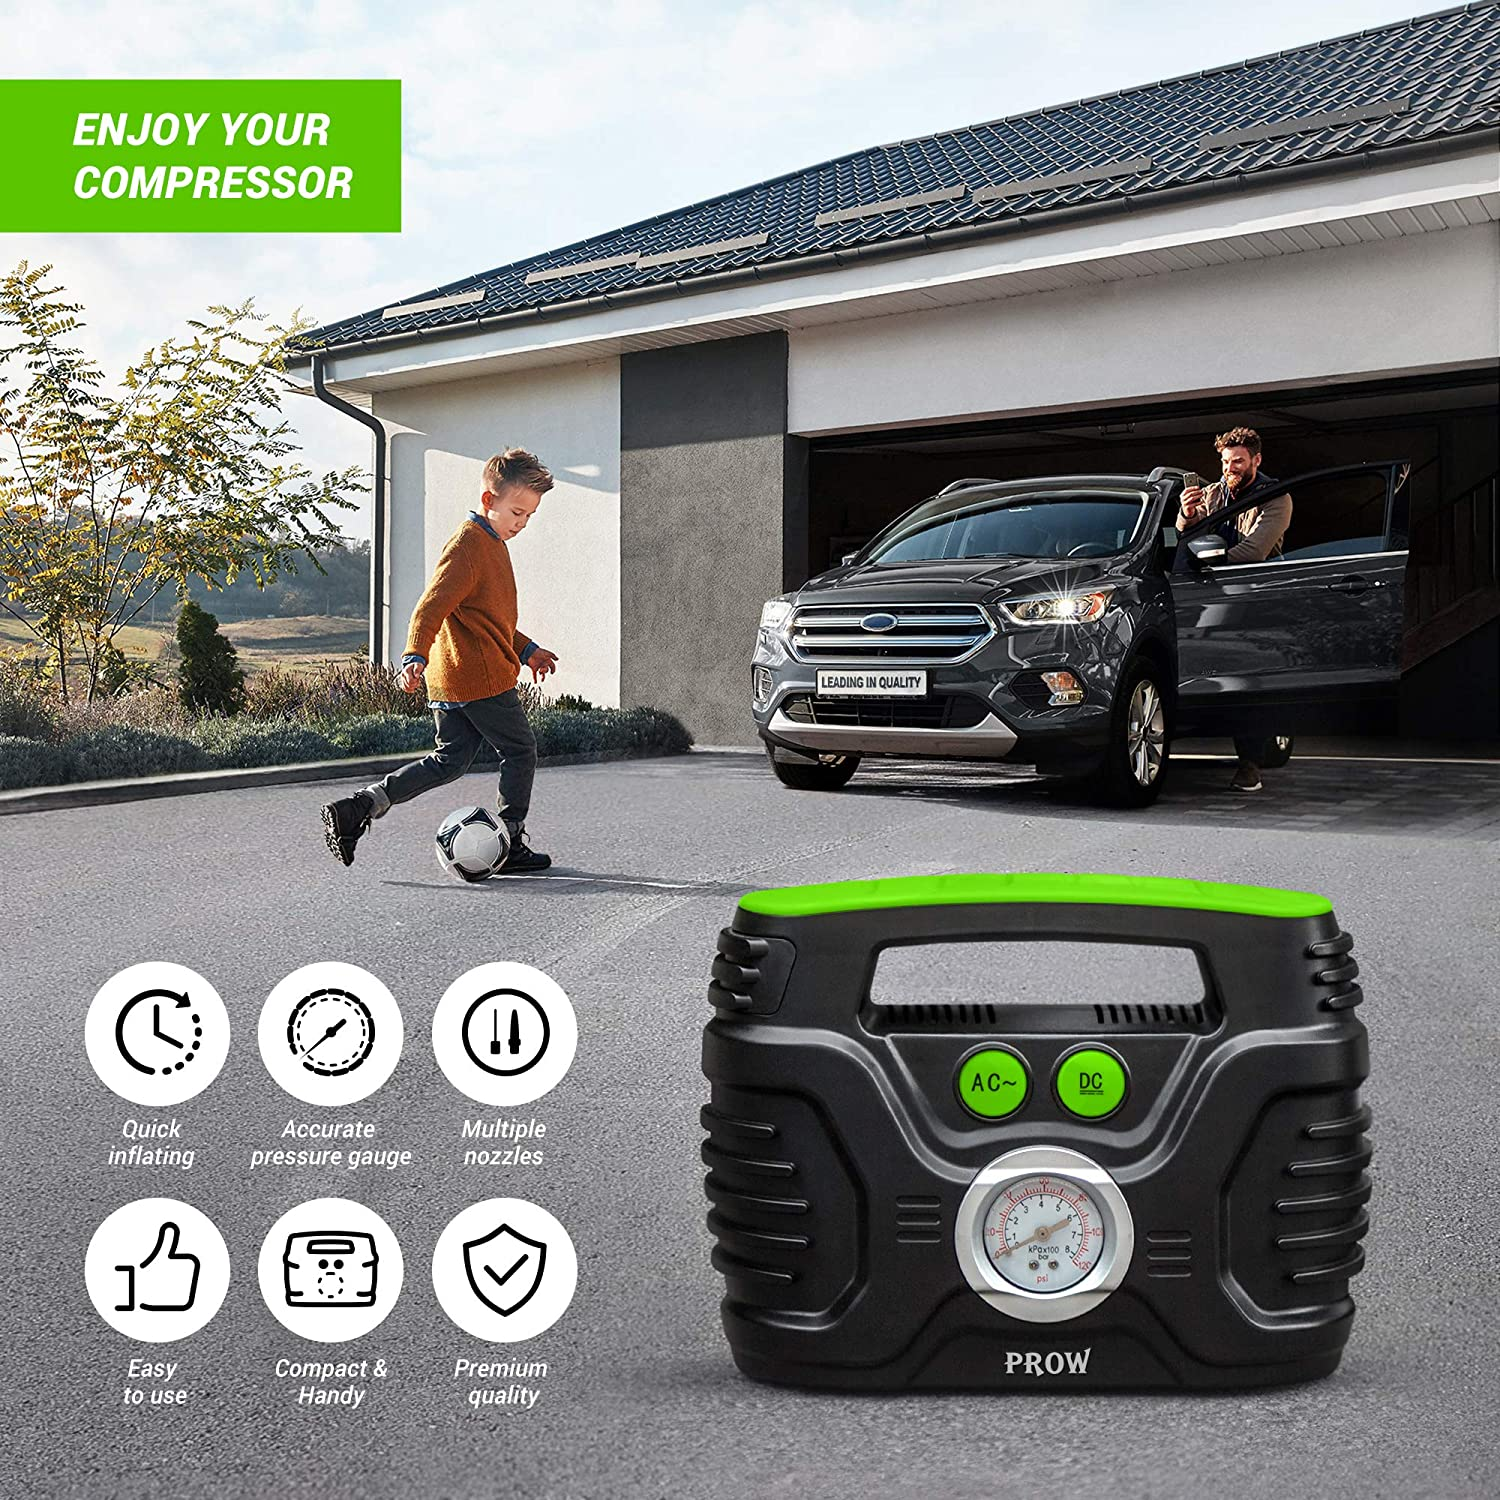 Basketball and More. Motorcycle AC 110V DC 12V Upscale Home Prow Portable Air Compressor Tire Inflator AC//DC Electric Pump for Car with Analog Pressure gauge Bike Air pump for Car Tires